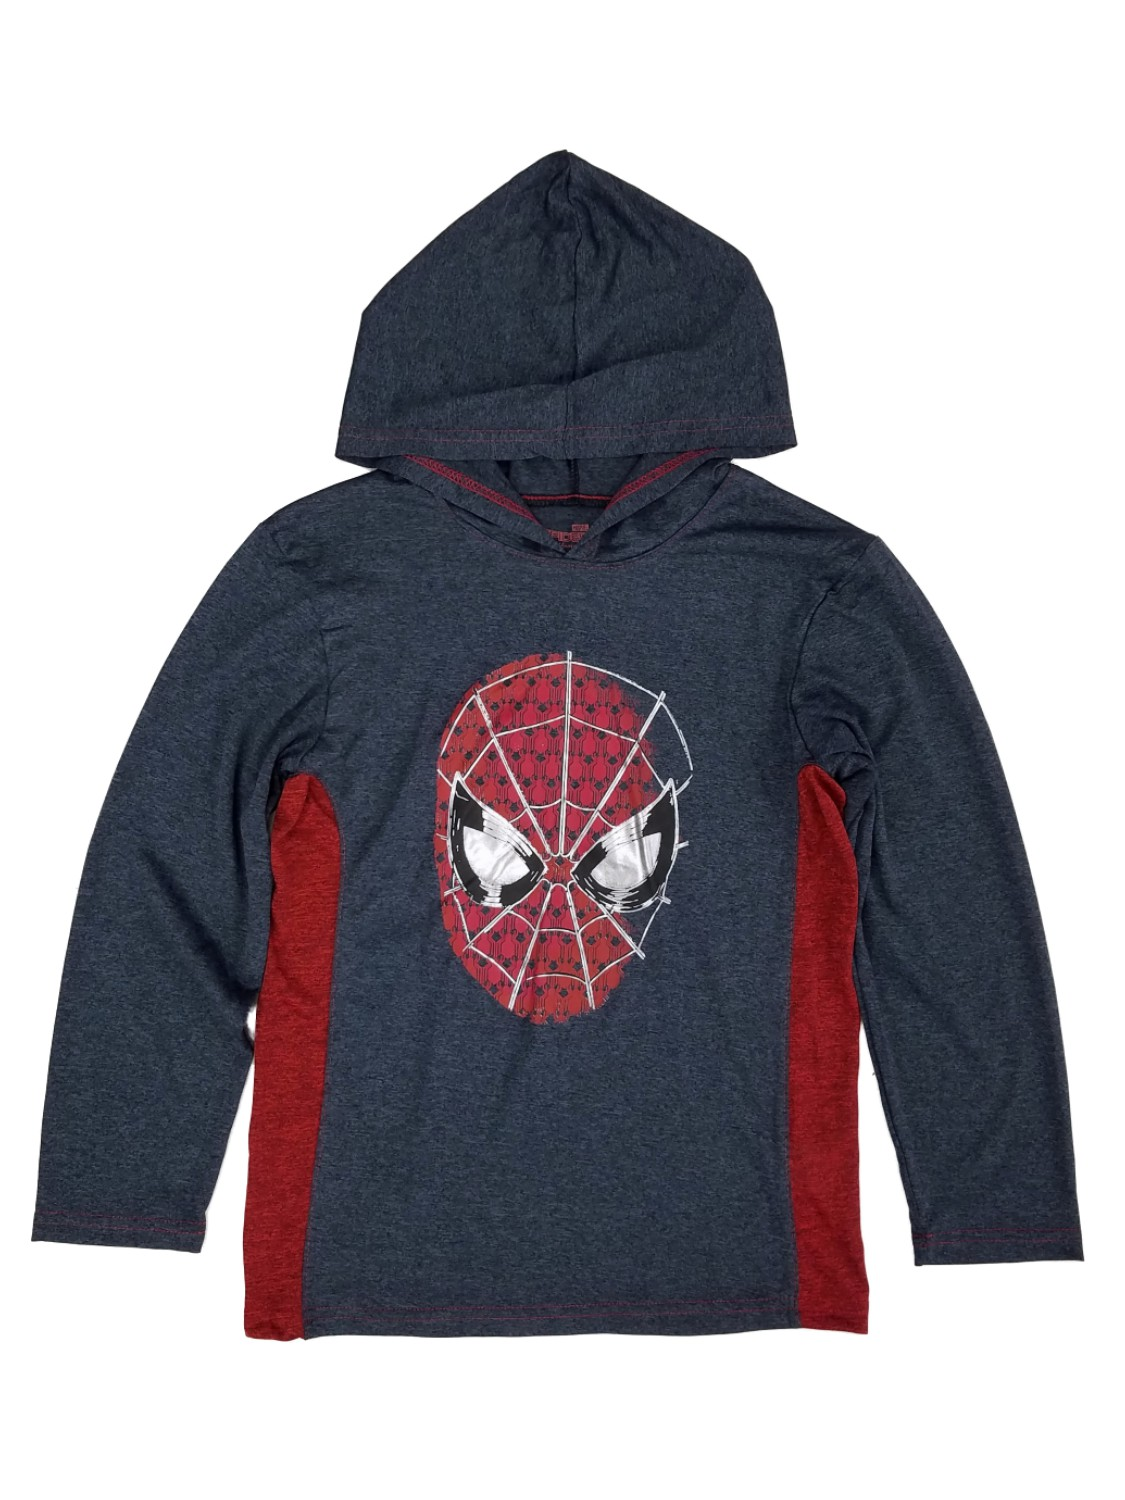 Spider-Man Homecoming Marvel Boys Gray/Red Hoodie Shirt